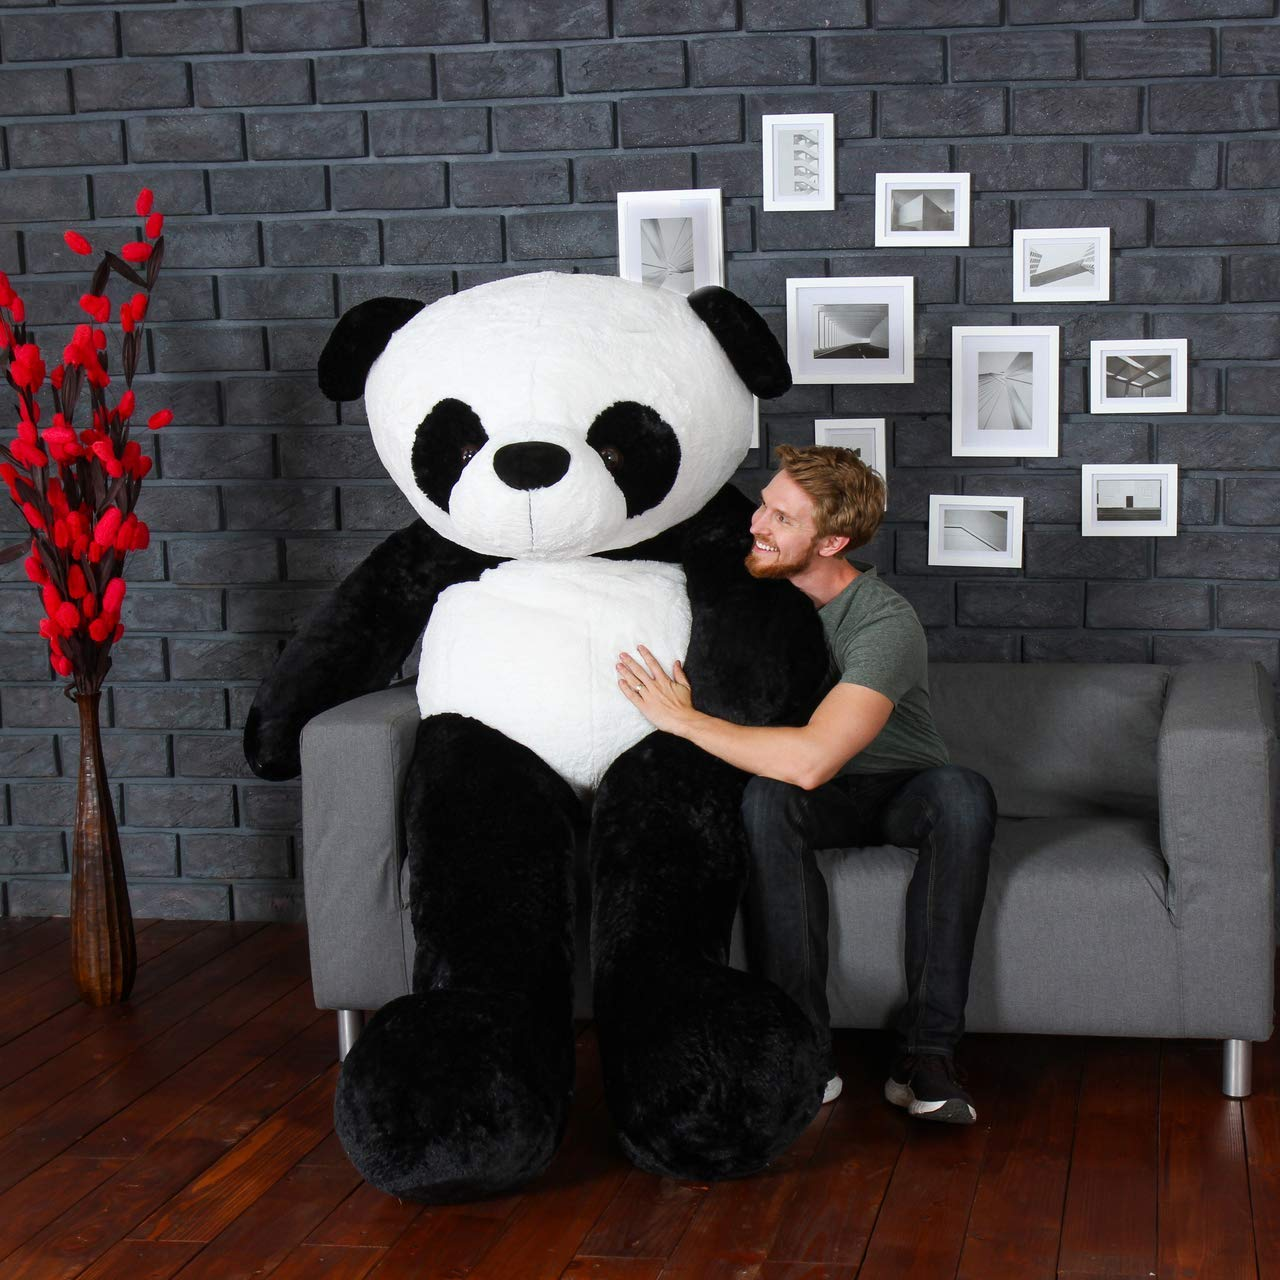 Anxiety Stuffed Animal, Buy Click4deal Giant Stuffed Spongy Huggable Cute Panda Teddy Bear High Quality 6 Feet Online At Low Prices In India Amazon In